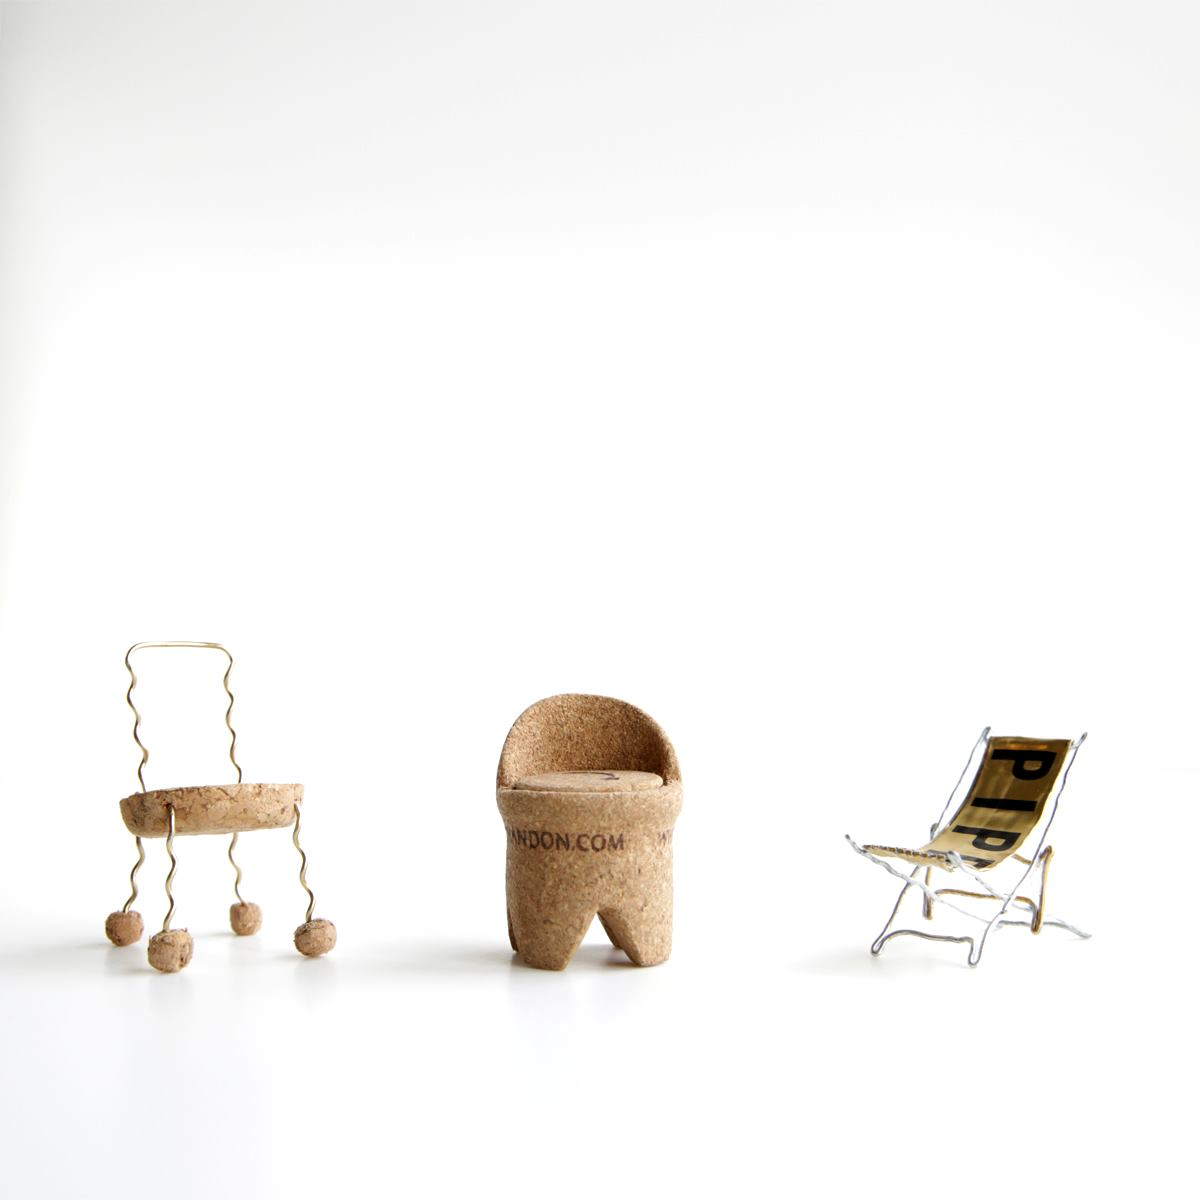 Champagne Chair Design Within Reach Chooses Champagne Chair Contest